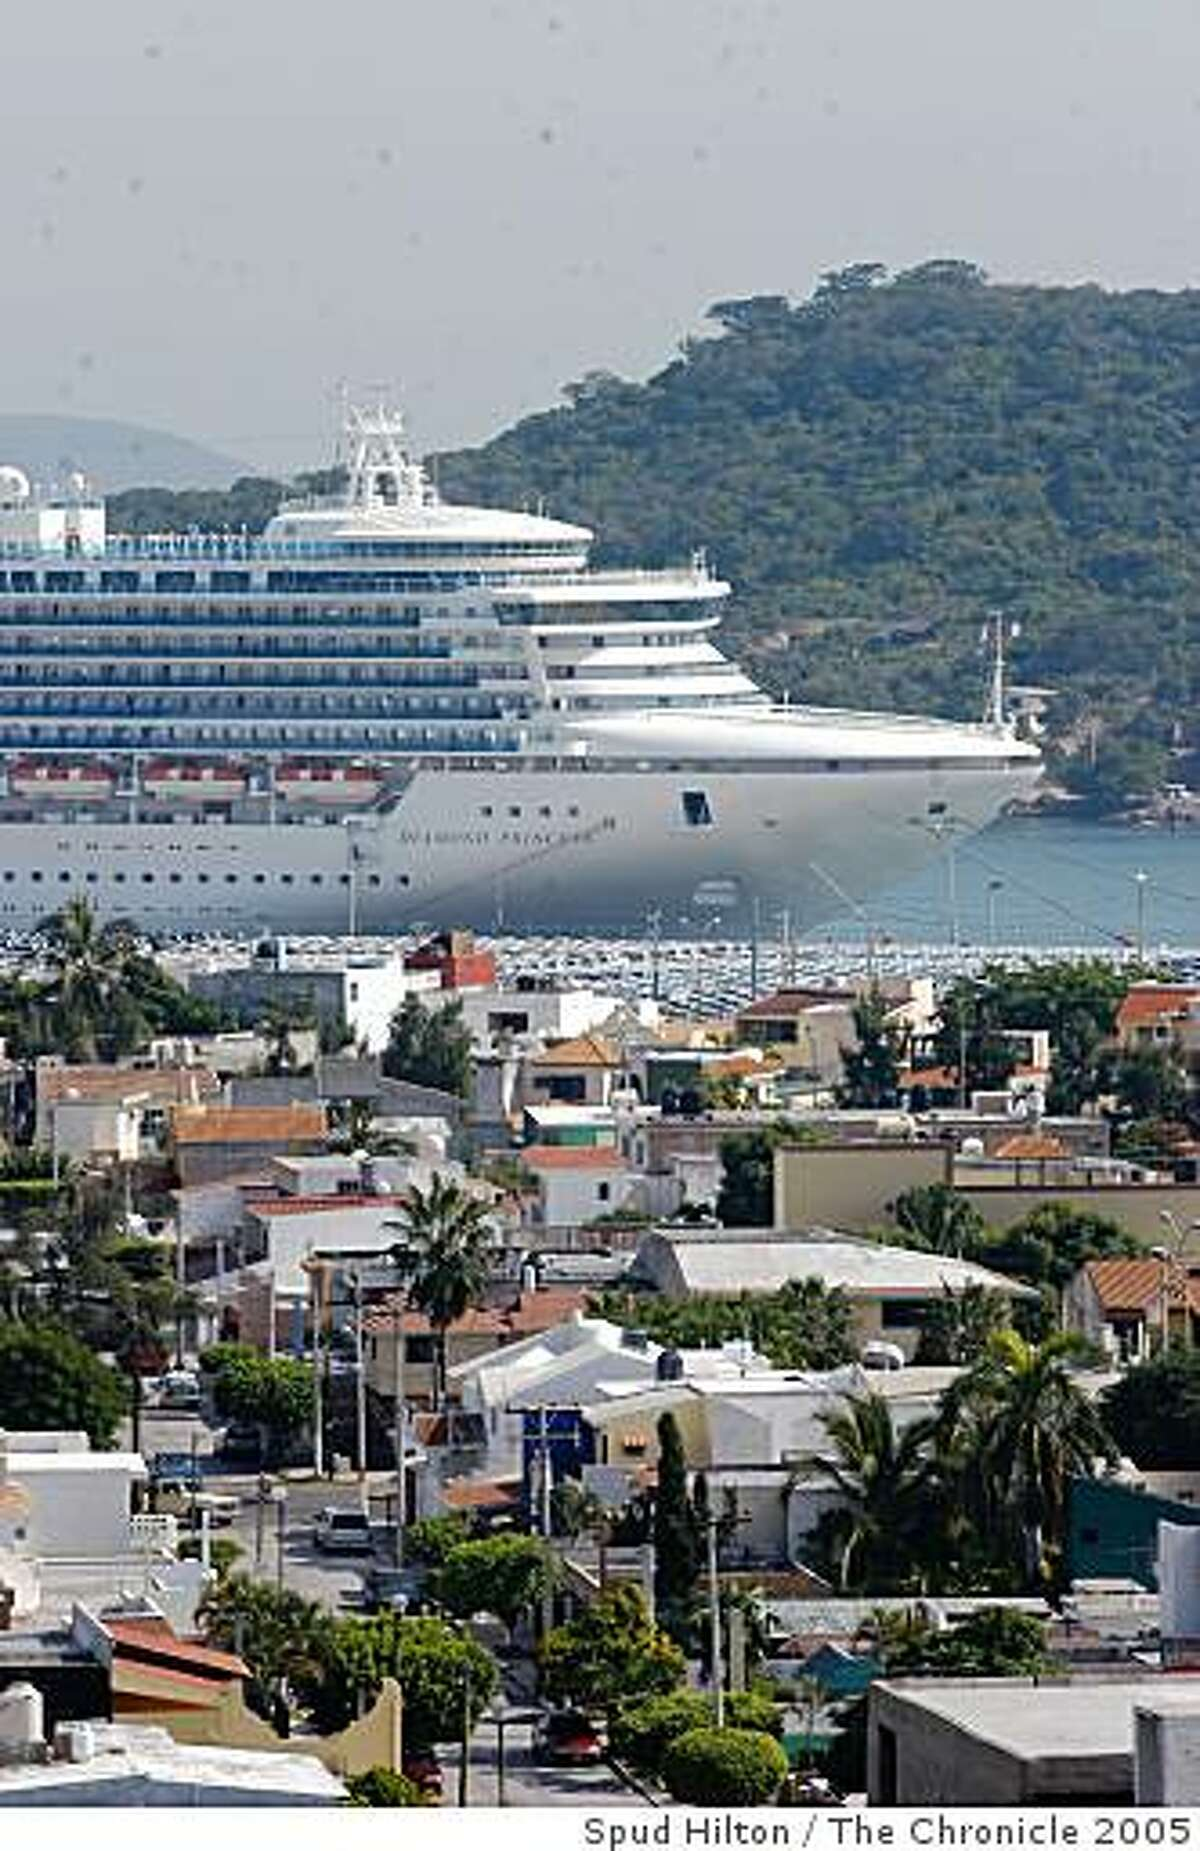 The Diamond Princess, which rises 18 stories above the water, towers over a Mazatlan neighborhood.